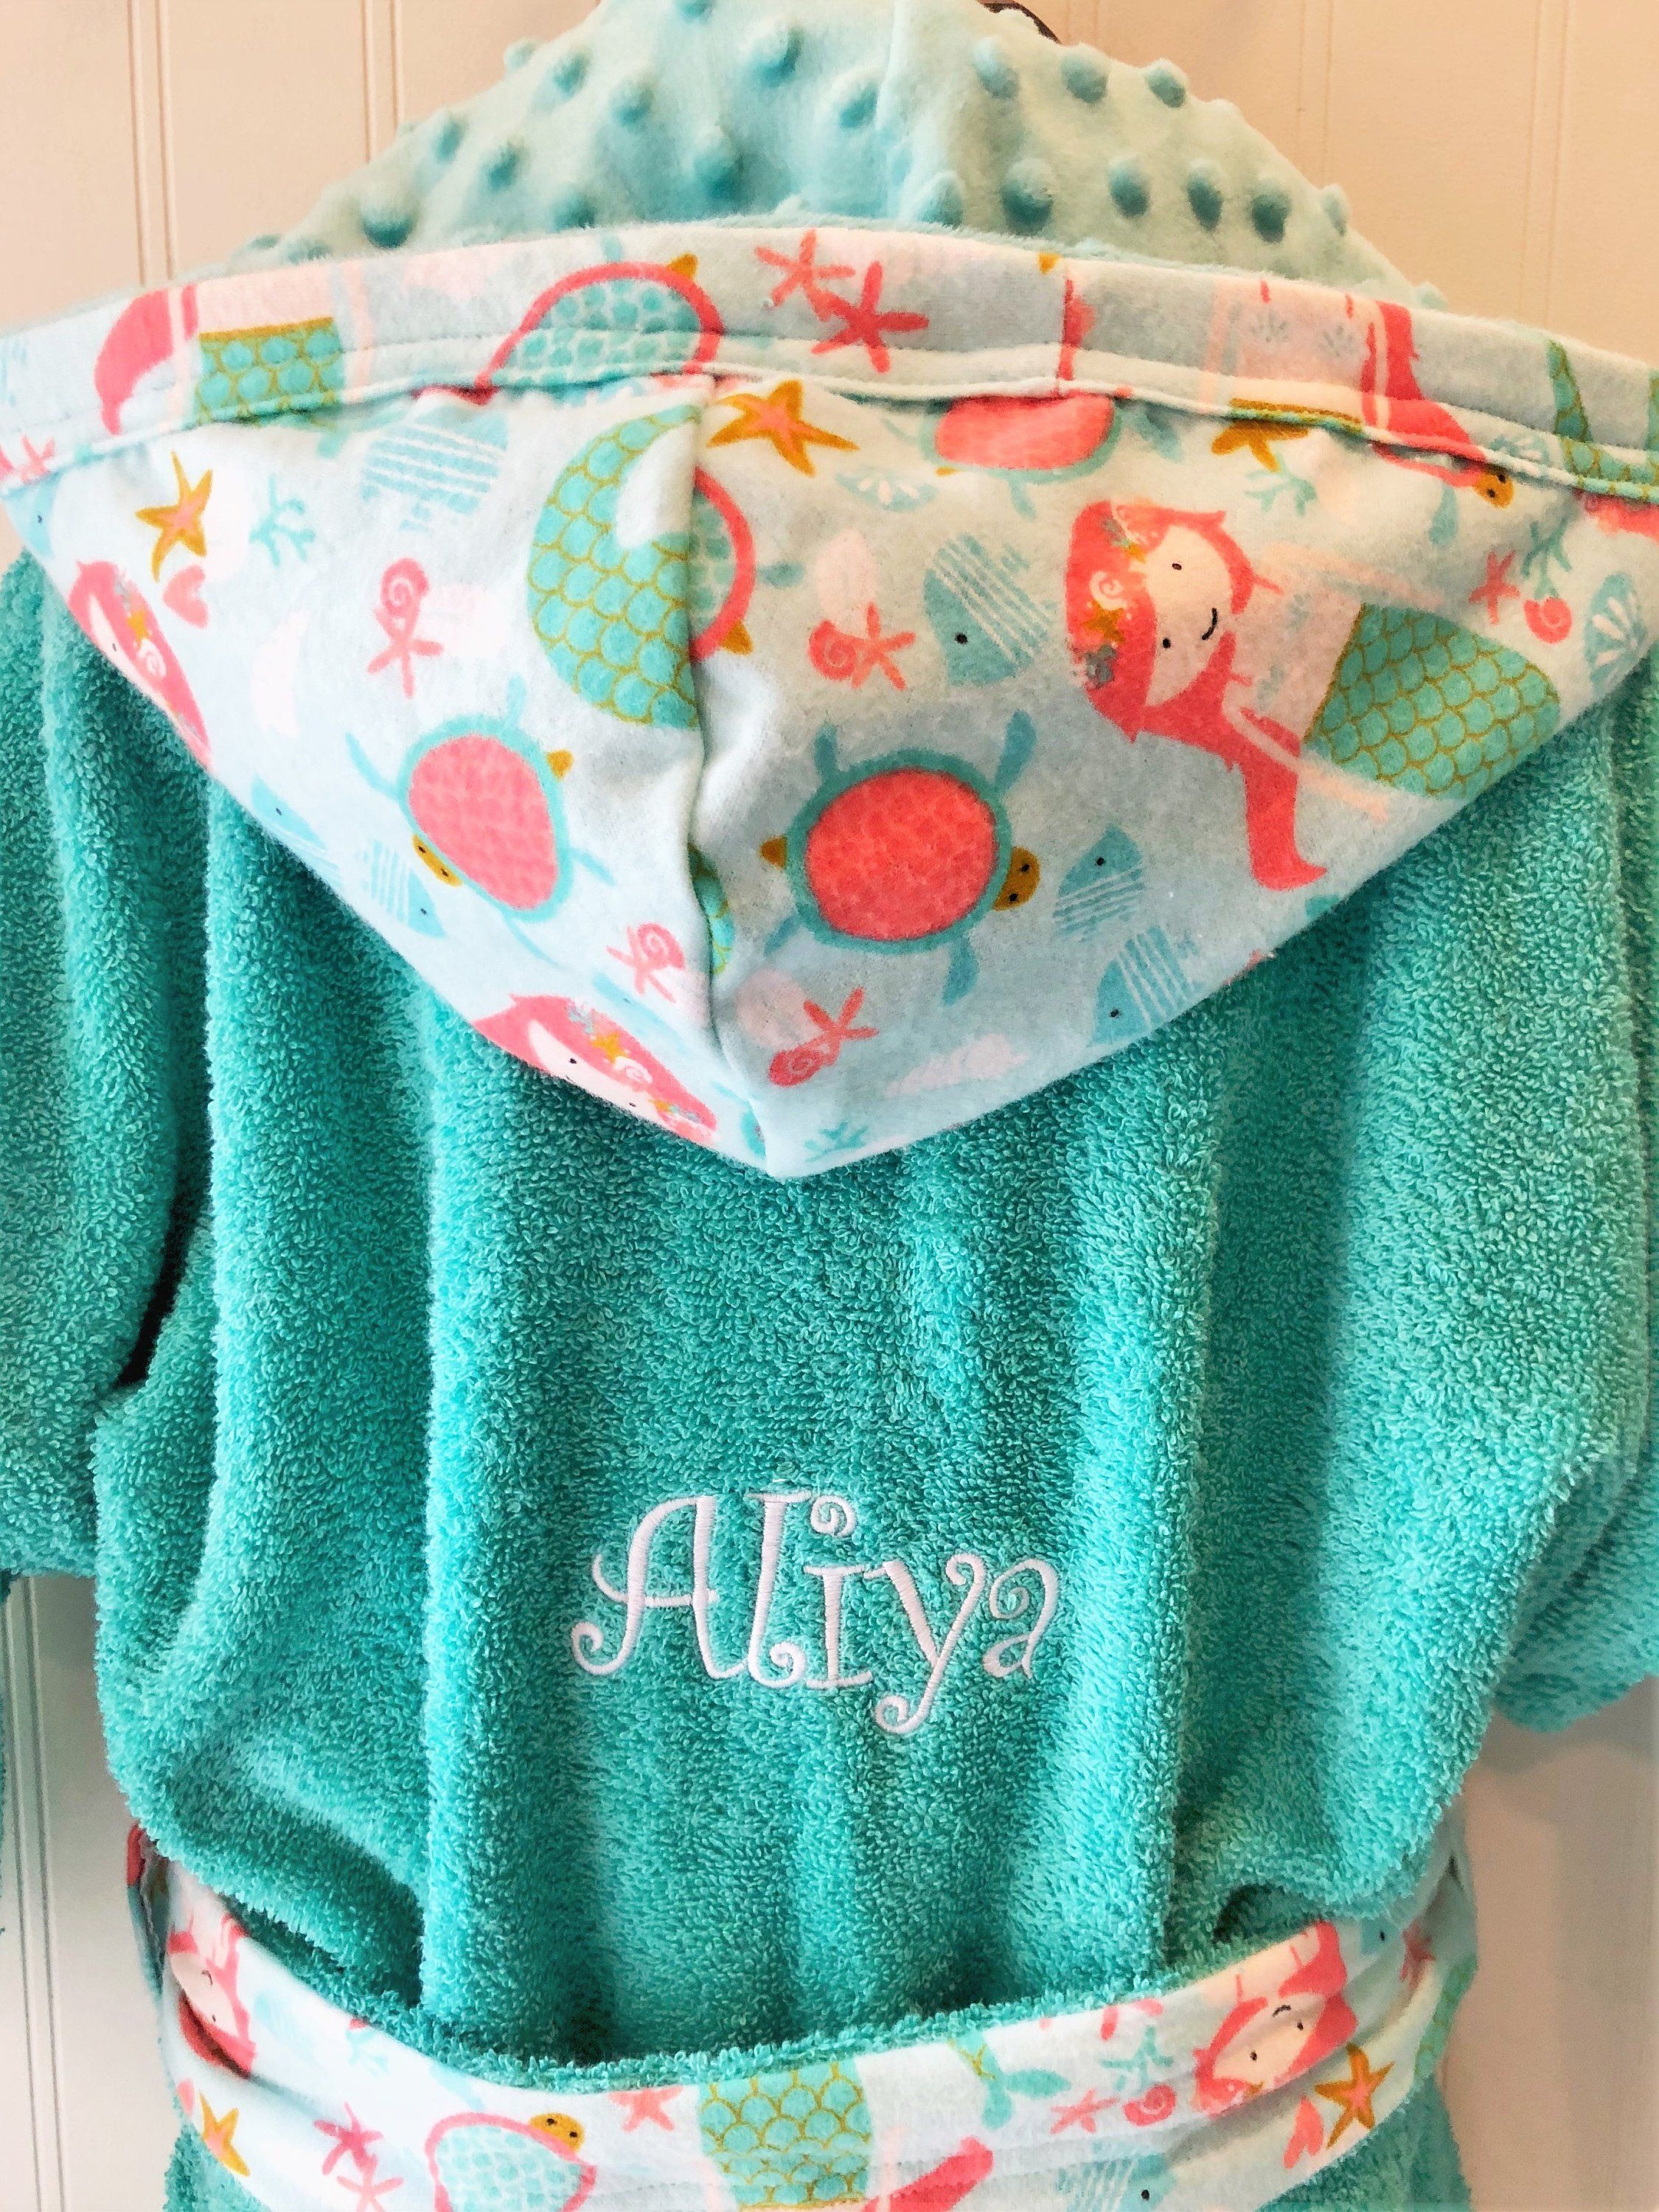 Girls -Bath-Robes-Mermaid-Aqua-Bathrobes-Hooded-Terry-Towels-Swim-Suit-Cover  Up-Shower-Birthday-Holiday-Baby-Kids-Teen-Gifts by tanjadlyn on Etsy 9254ae55c